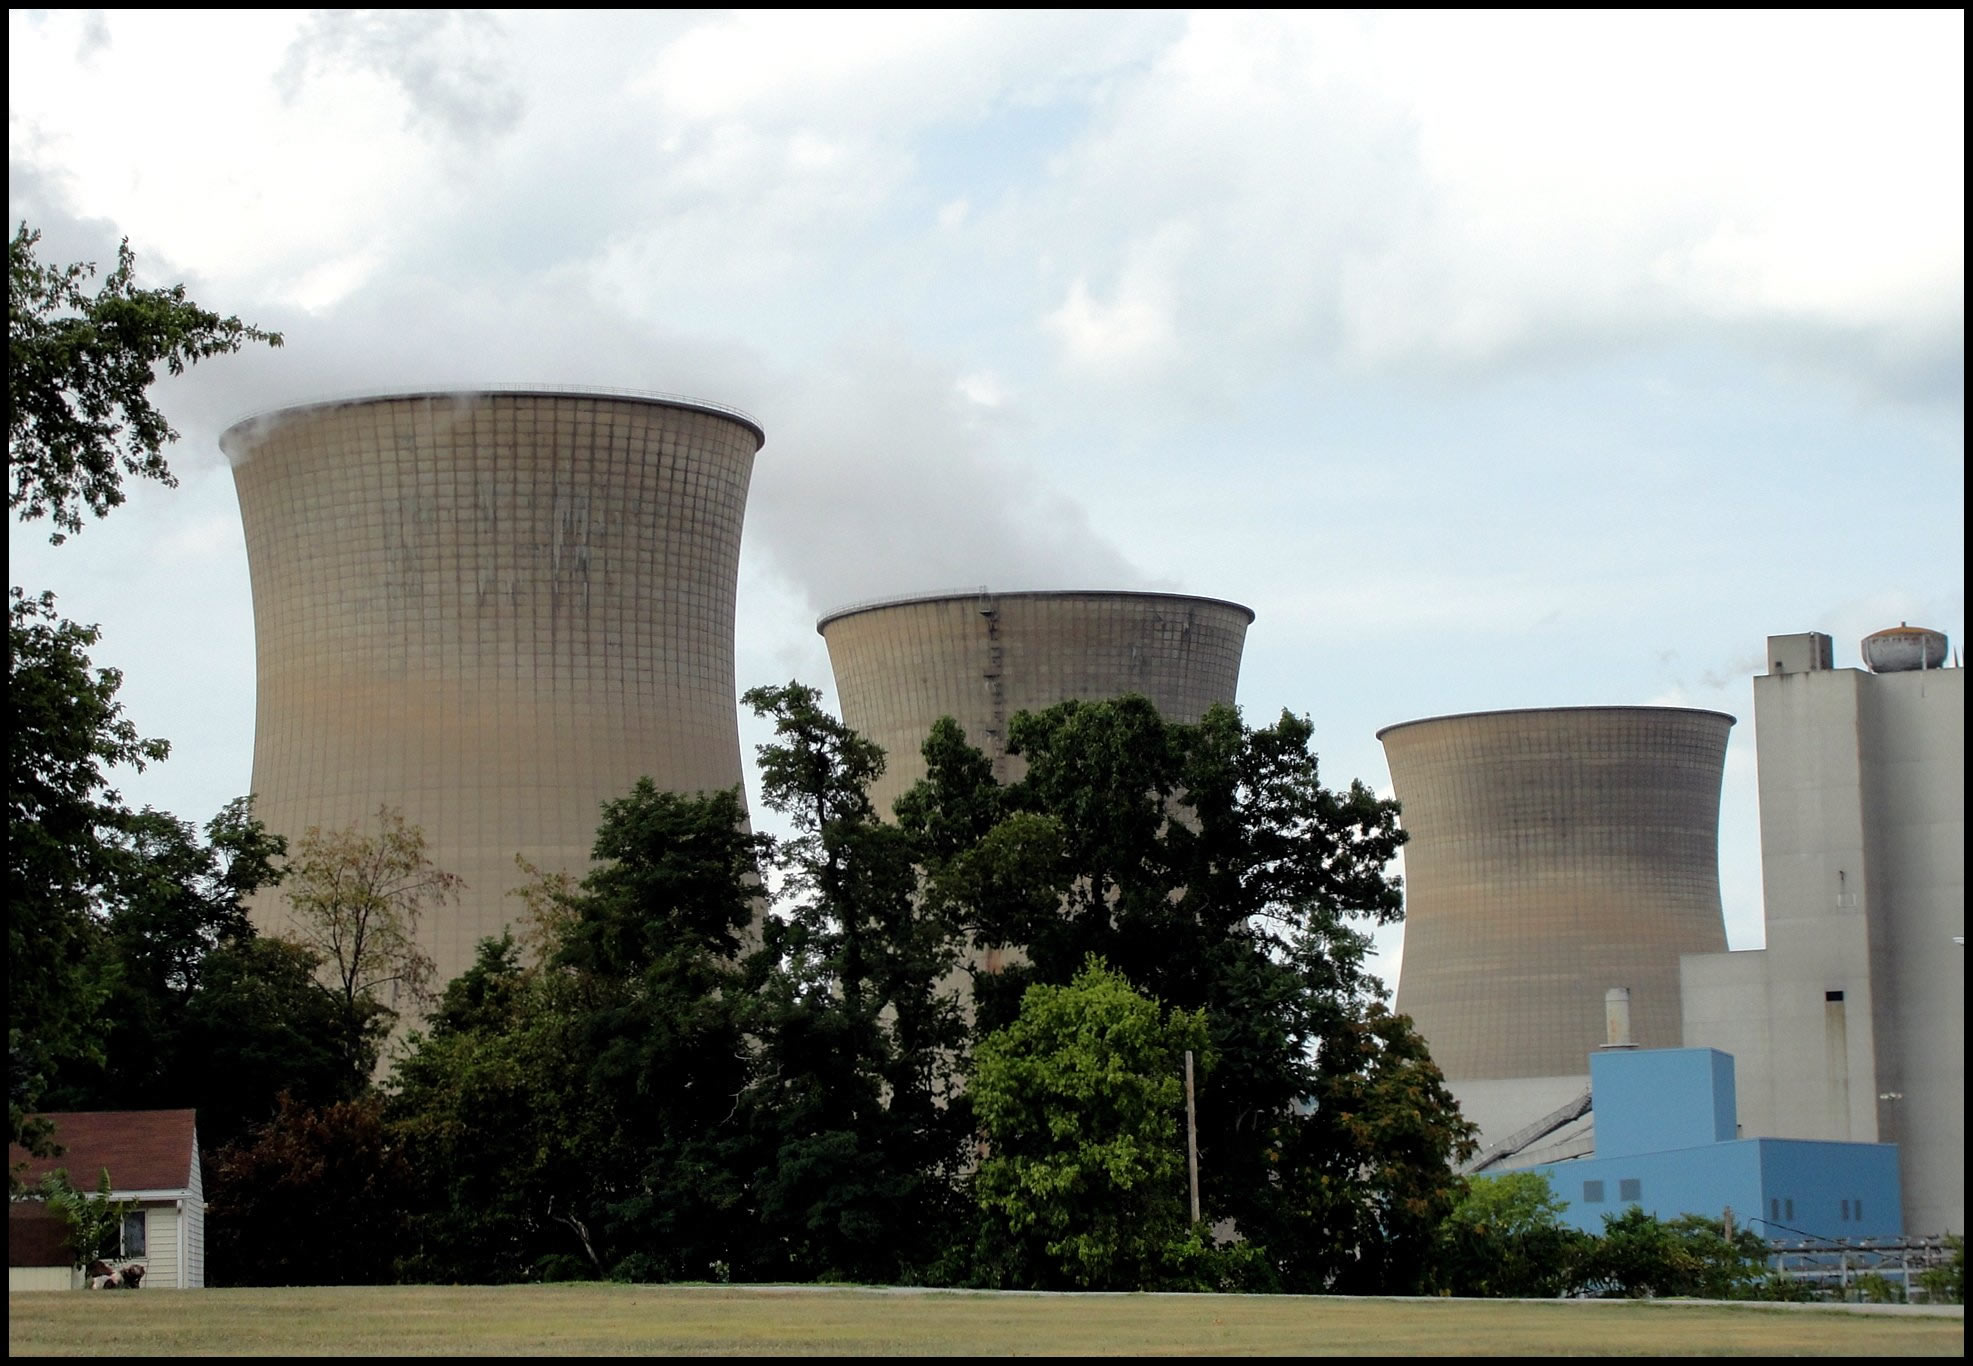 The stacks of the Shippingport Nuclear Plant